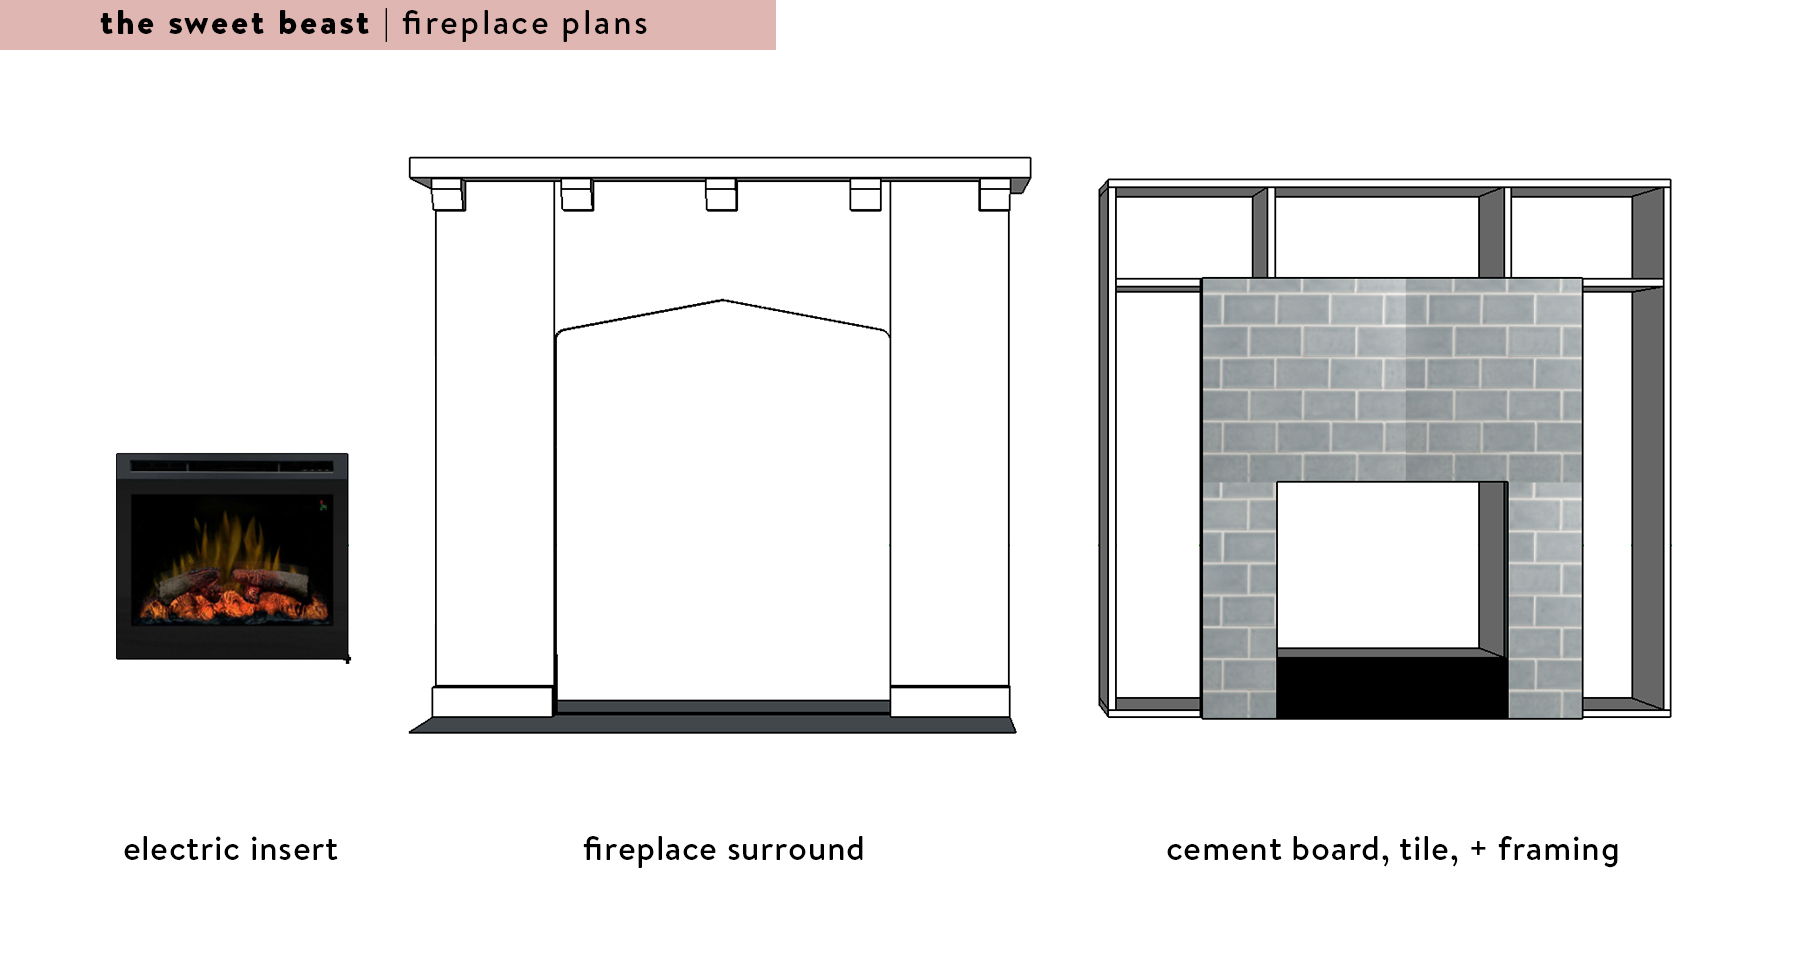 fireplace surround deconstructed diagram